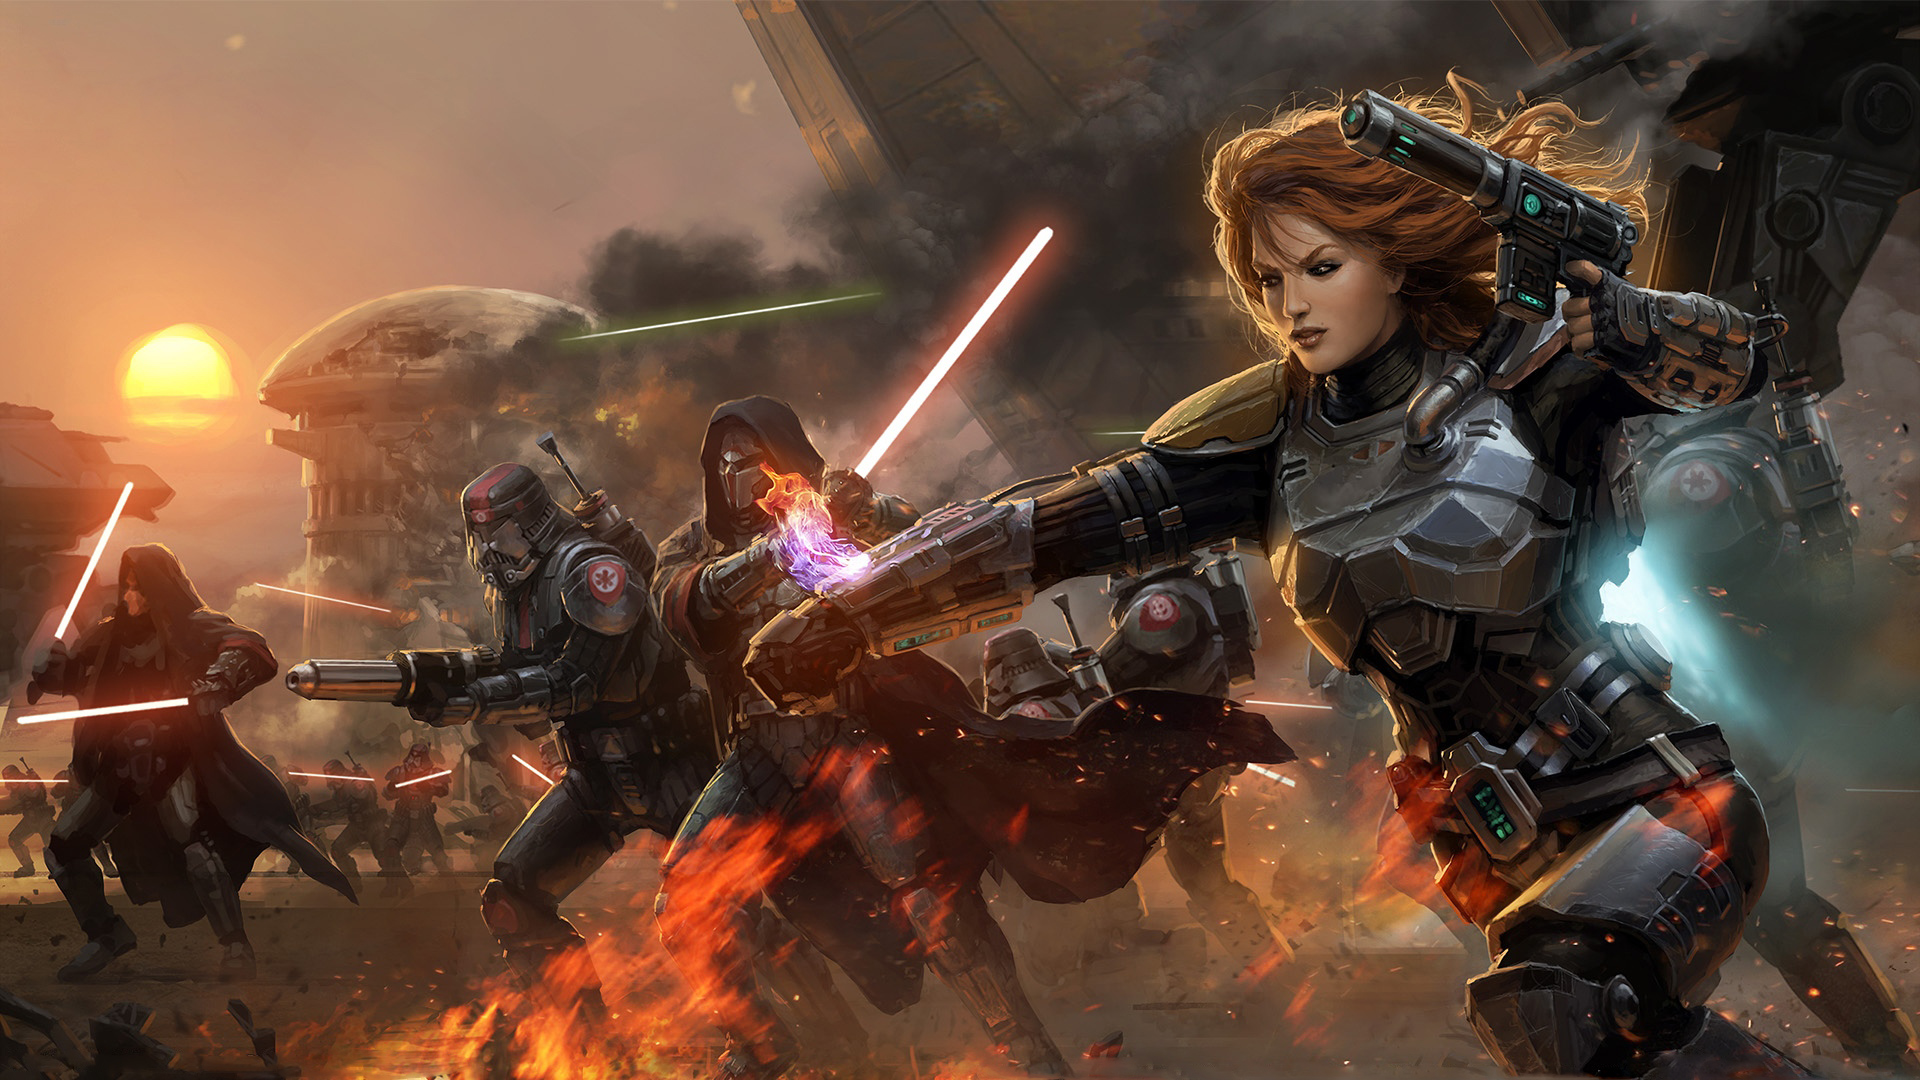 Star Wars Old Republic Wallpaper: Proioxis Full HD Wallpaper And Background Image